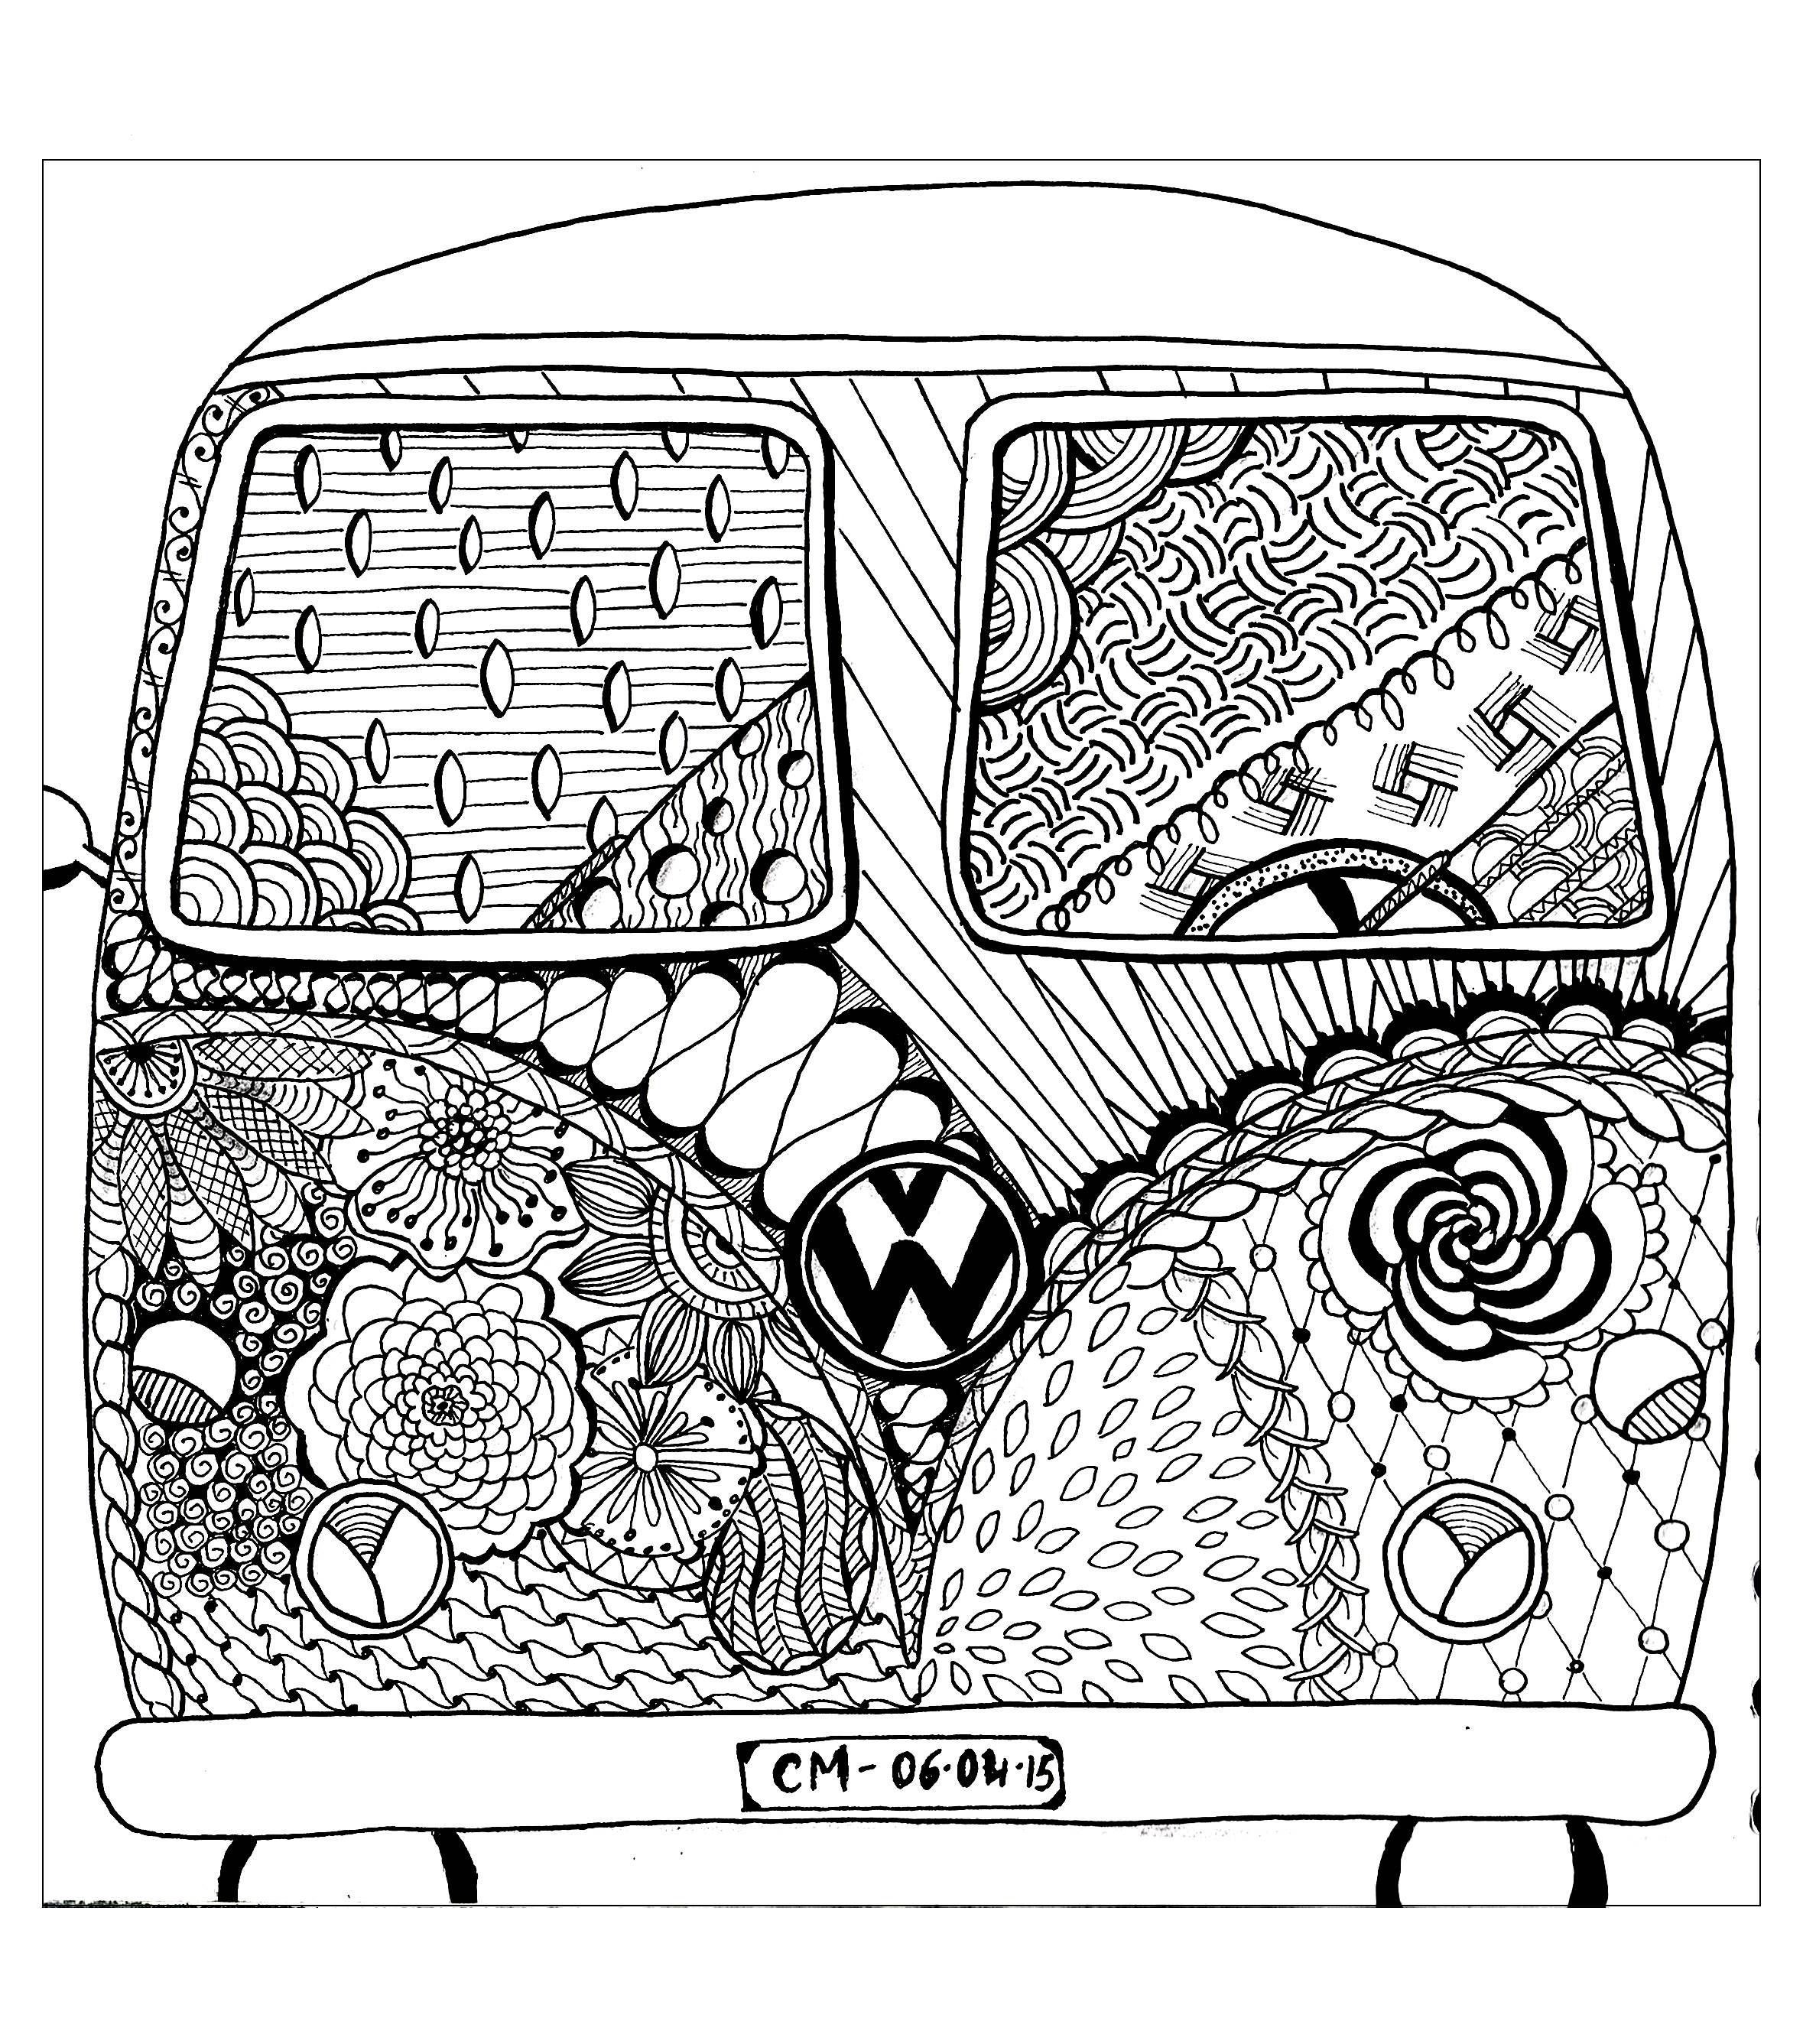 Printable coloring pages zentangle - Free Coloring Page Coloring Zentangle By Cathym 8 Hippie Camper